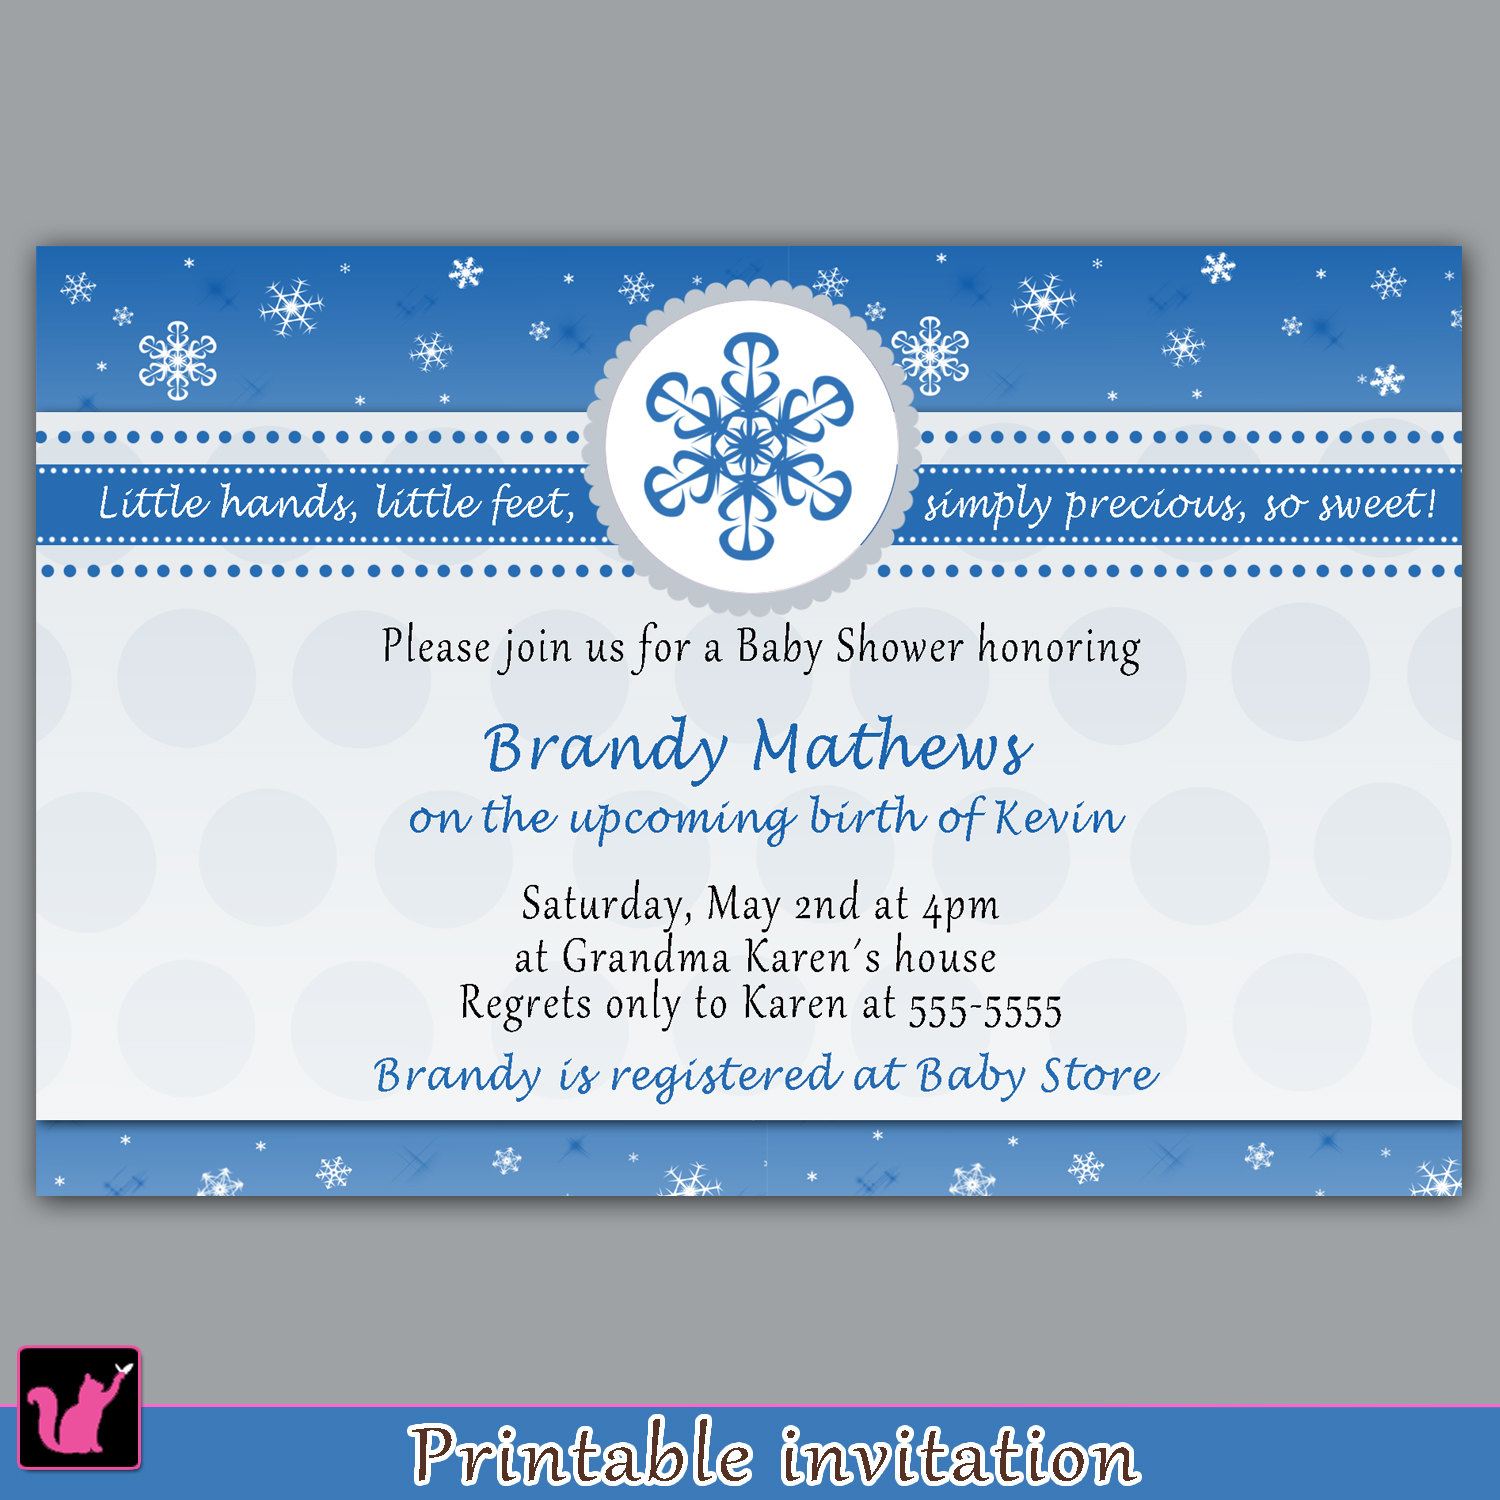 free winter wonderland party invitations  invitations ideas, party invitations